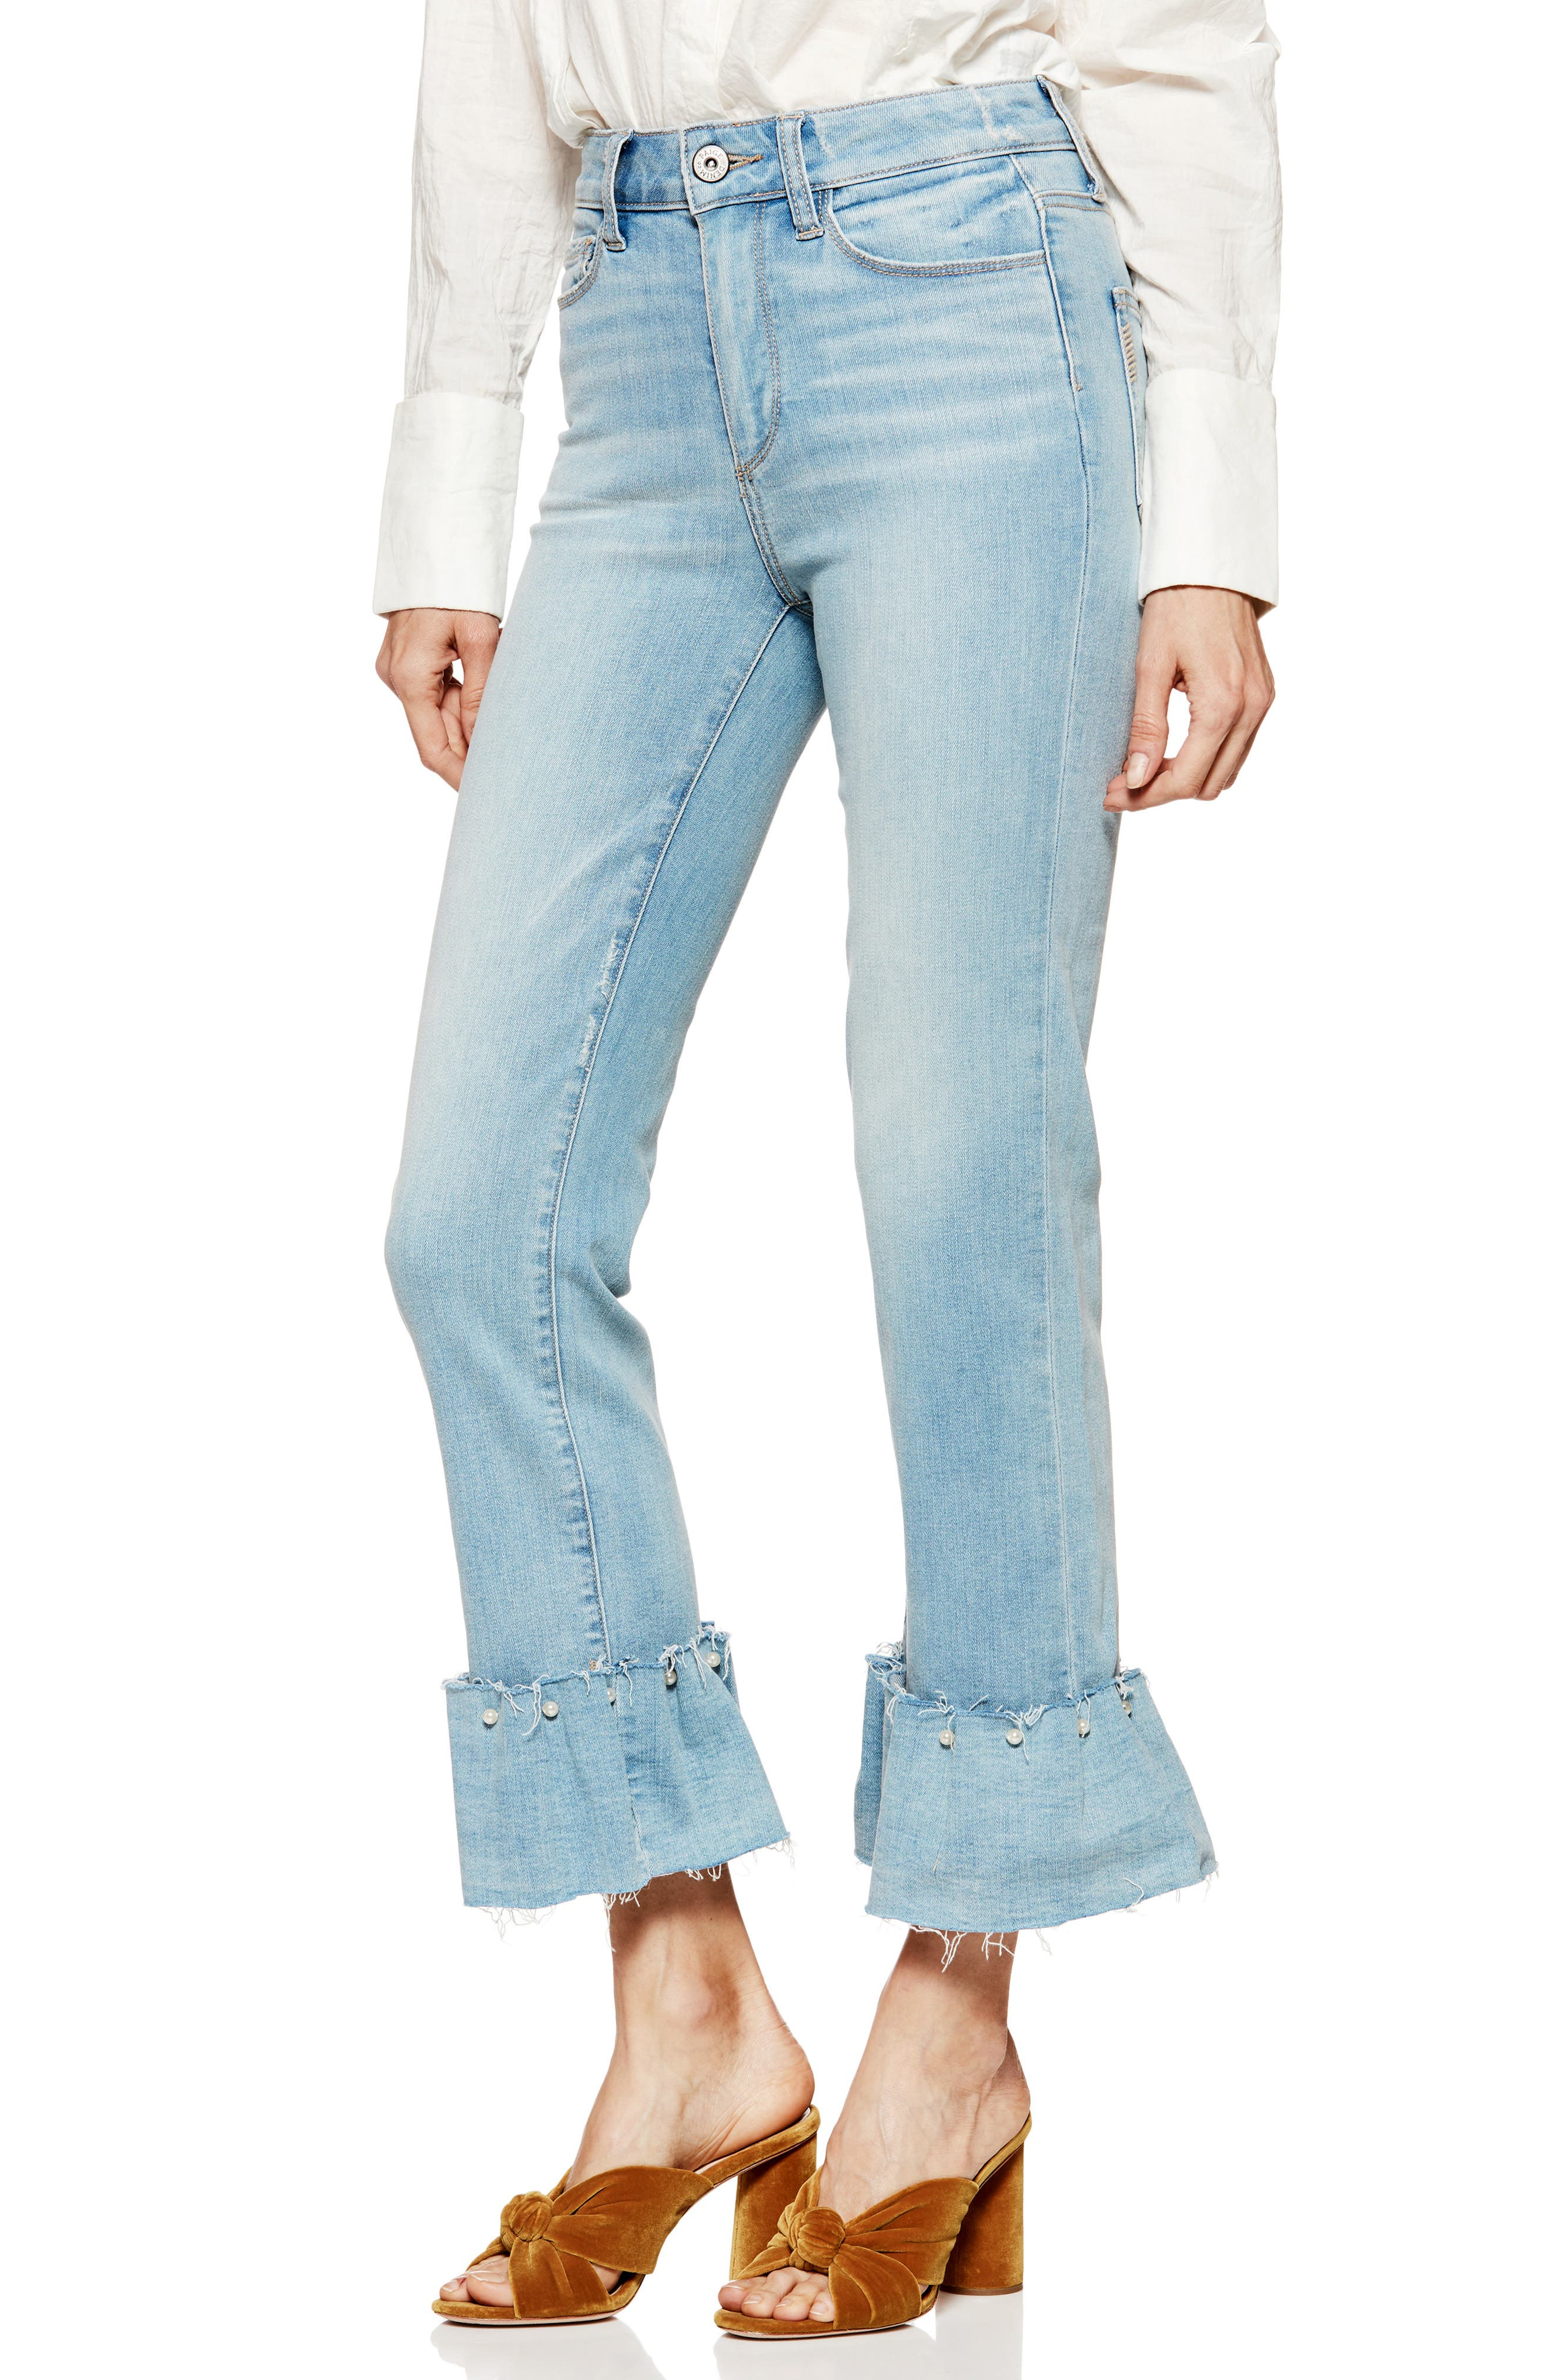 Transcend Vintage - Hoxton Embellished Ruffle High Waist Jeans,                         Main,                         color, PALMS